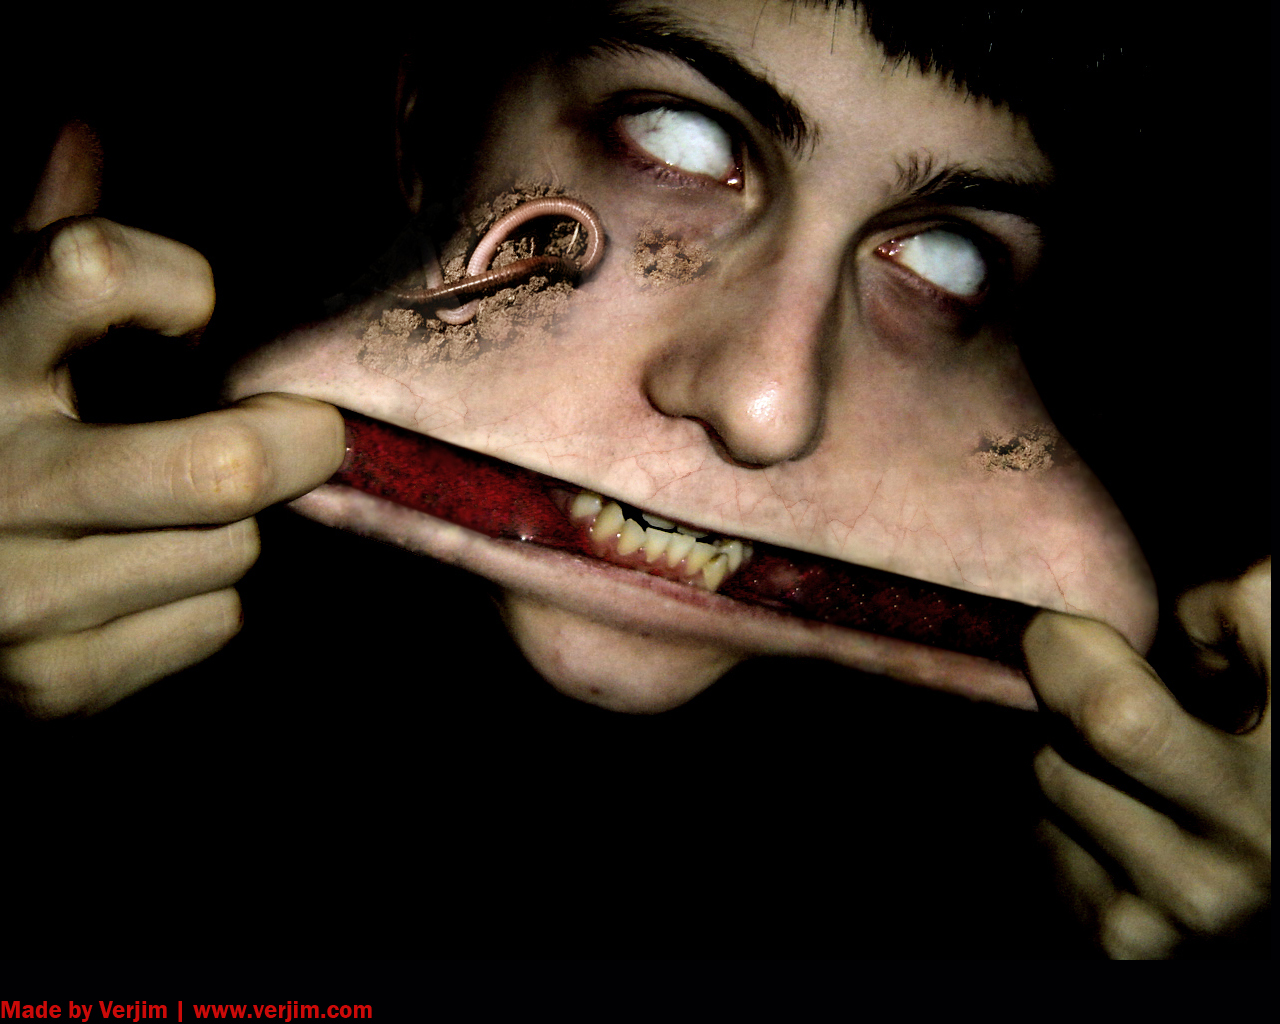 Wallpapers Download Best Horror Wallpapers For Mobile: Horror HD Wallpapers